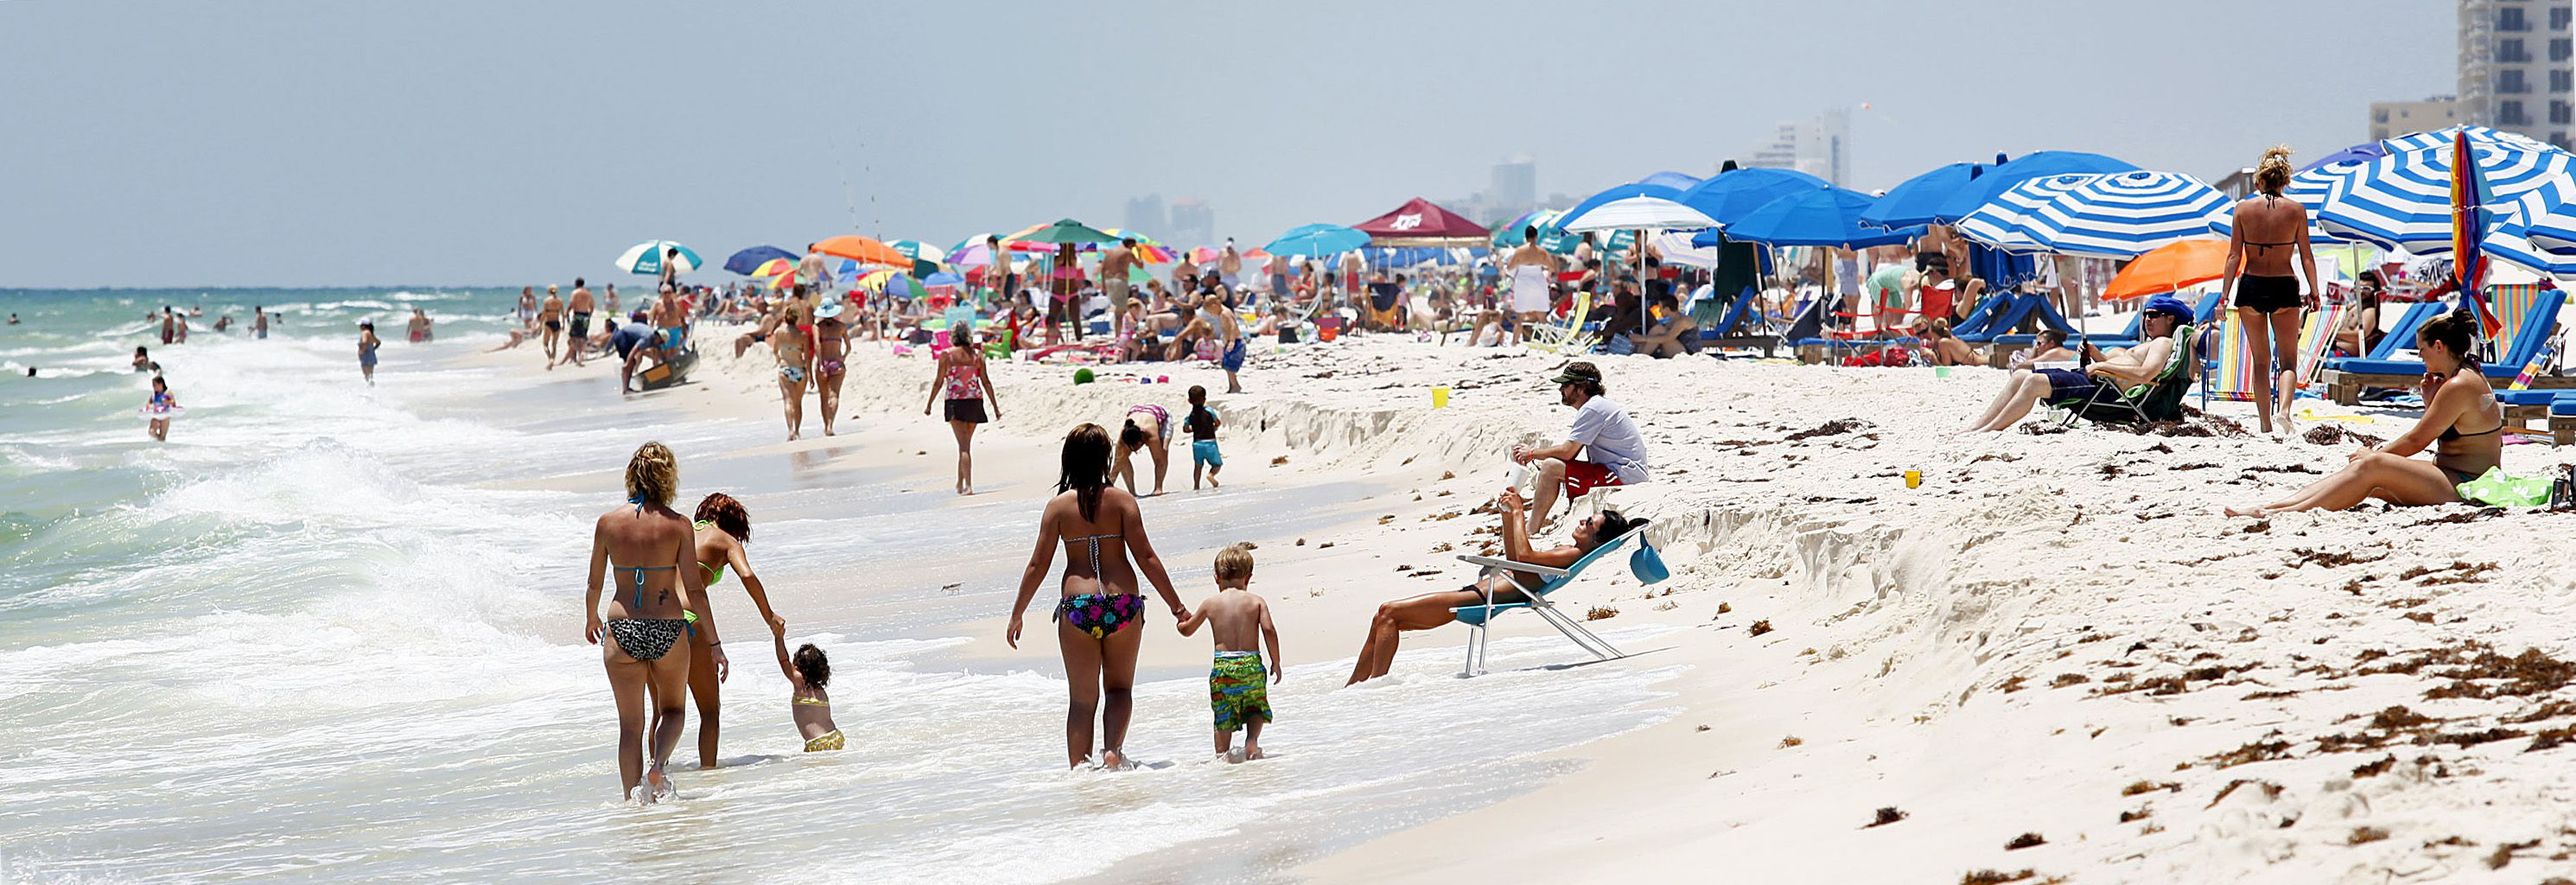 Tourists crowd the beach in Perdido Key, Florida May 19, 2012. Two years after a history-making offshore oil well explosion devastated tourism in the region, the Gulf Coast is a hot destination once again, thanks in part to millions of dollars worth of promotion funded by the well's owner, BP PLC. Now tourism marketers from Louisiana to Florida are scrambling to maintain the momentum and find revenue sources for future campaigns. Picture taken May 19, 2012.  REUTERS/Sean Gardner (UNITED STATES - Tags: TRAVEL ENVIRONMENT SOCIETY BUSINESS ENERGY) - RTR32PDW